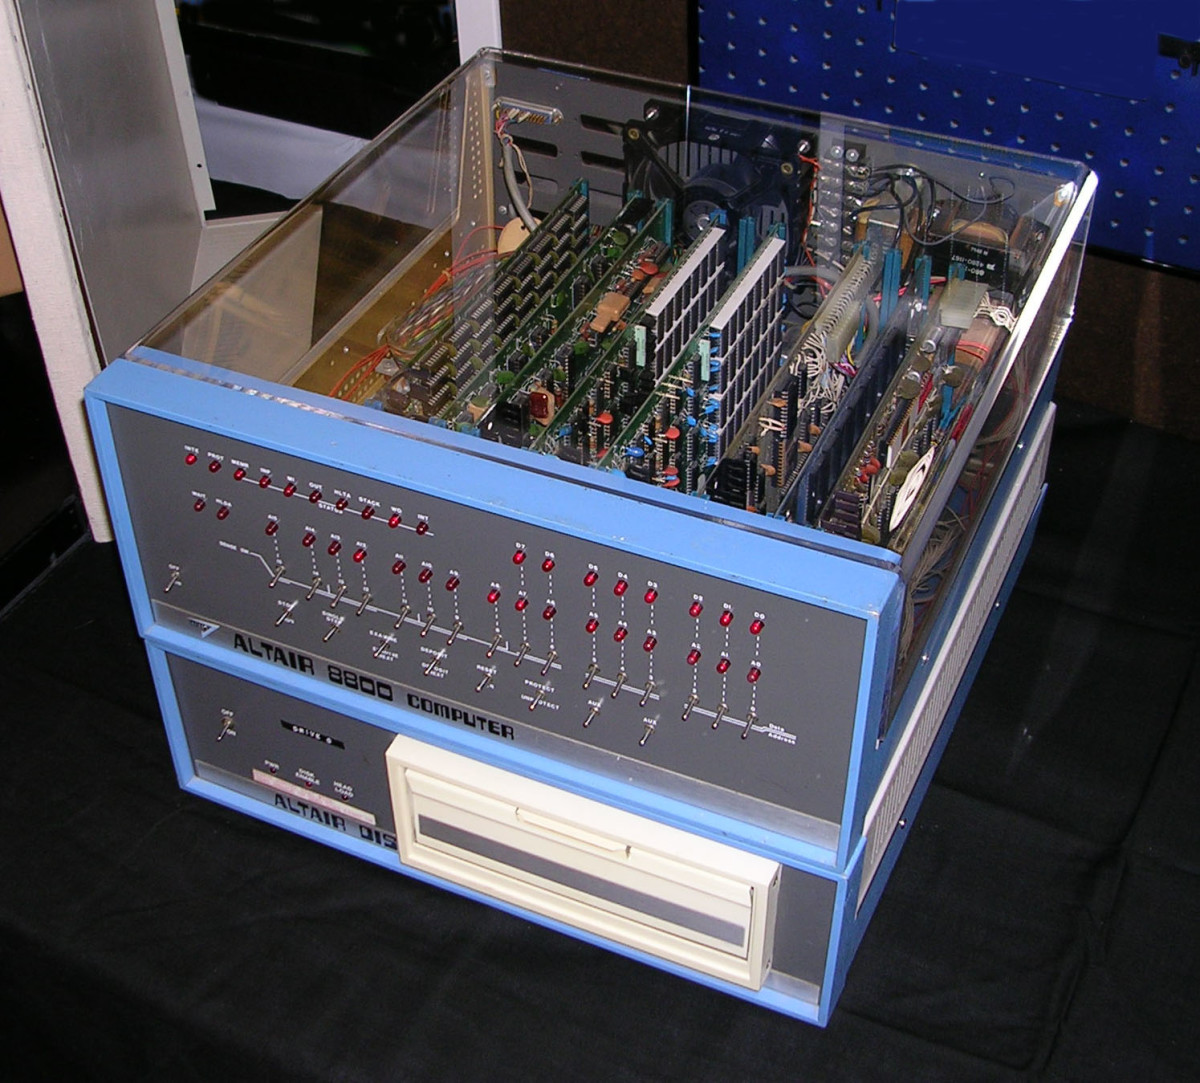 Altair 8800 with separate tape drive (bottom)